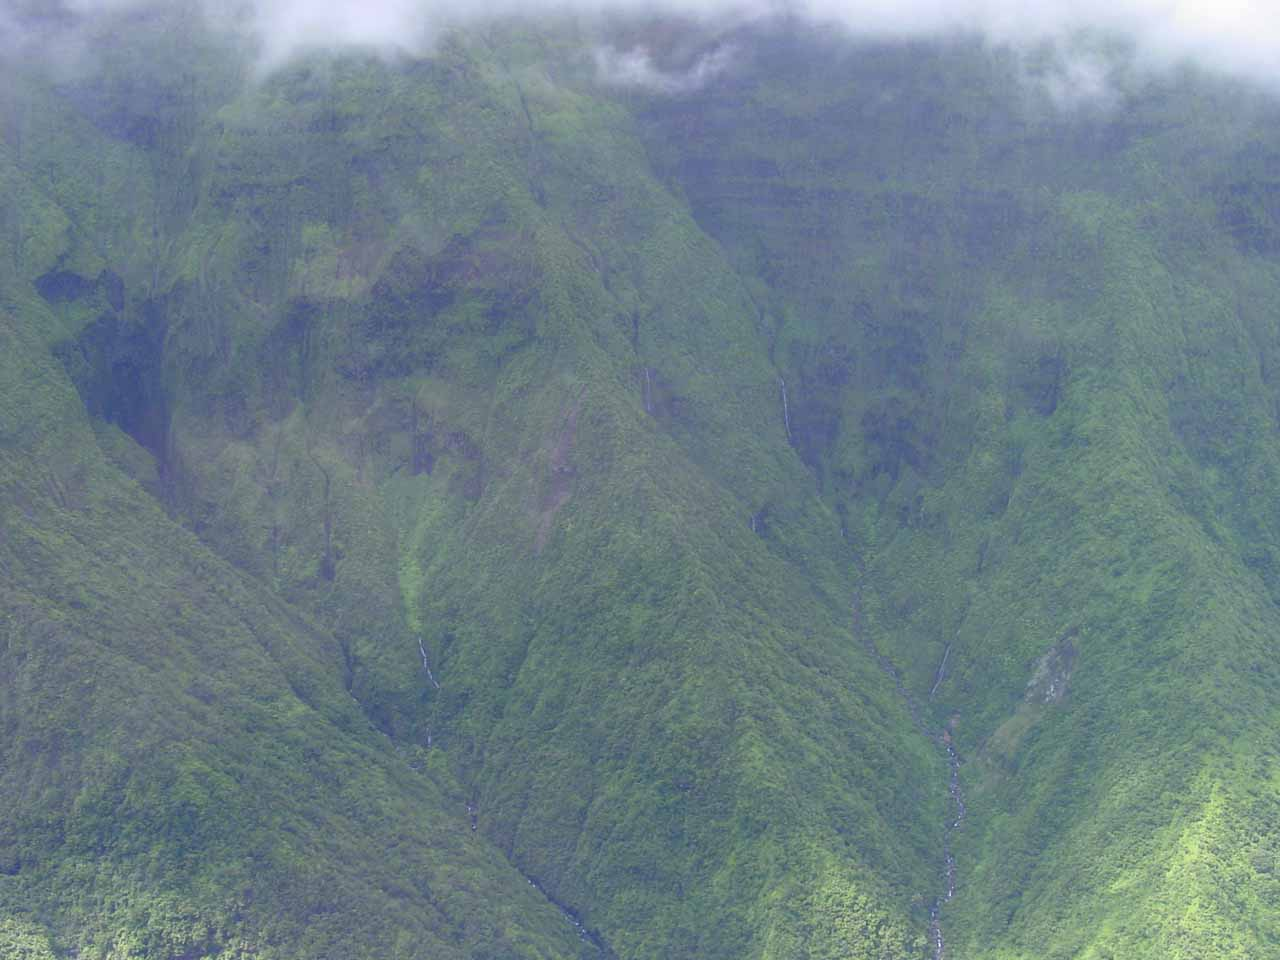 The Wall of Tears (the other touted feature of this West Maui Helicopter flight), except there were hardly any tears